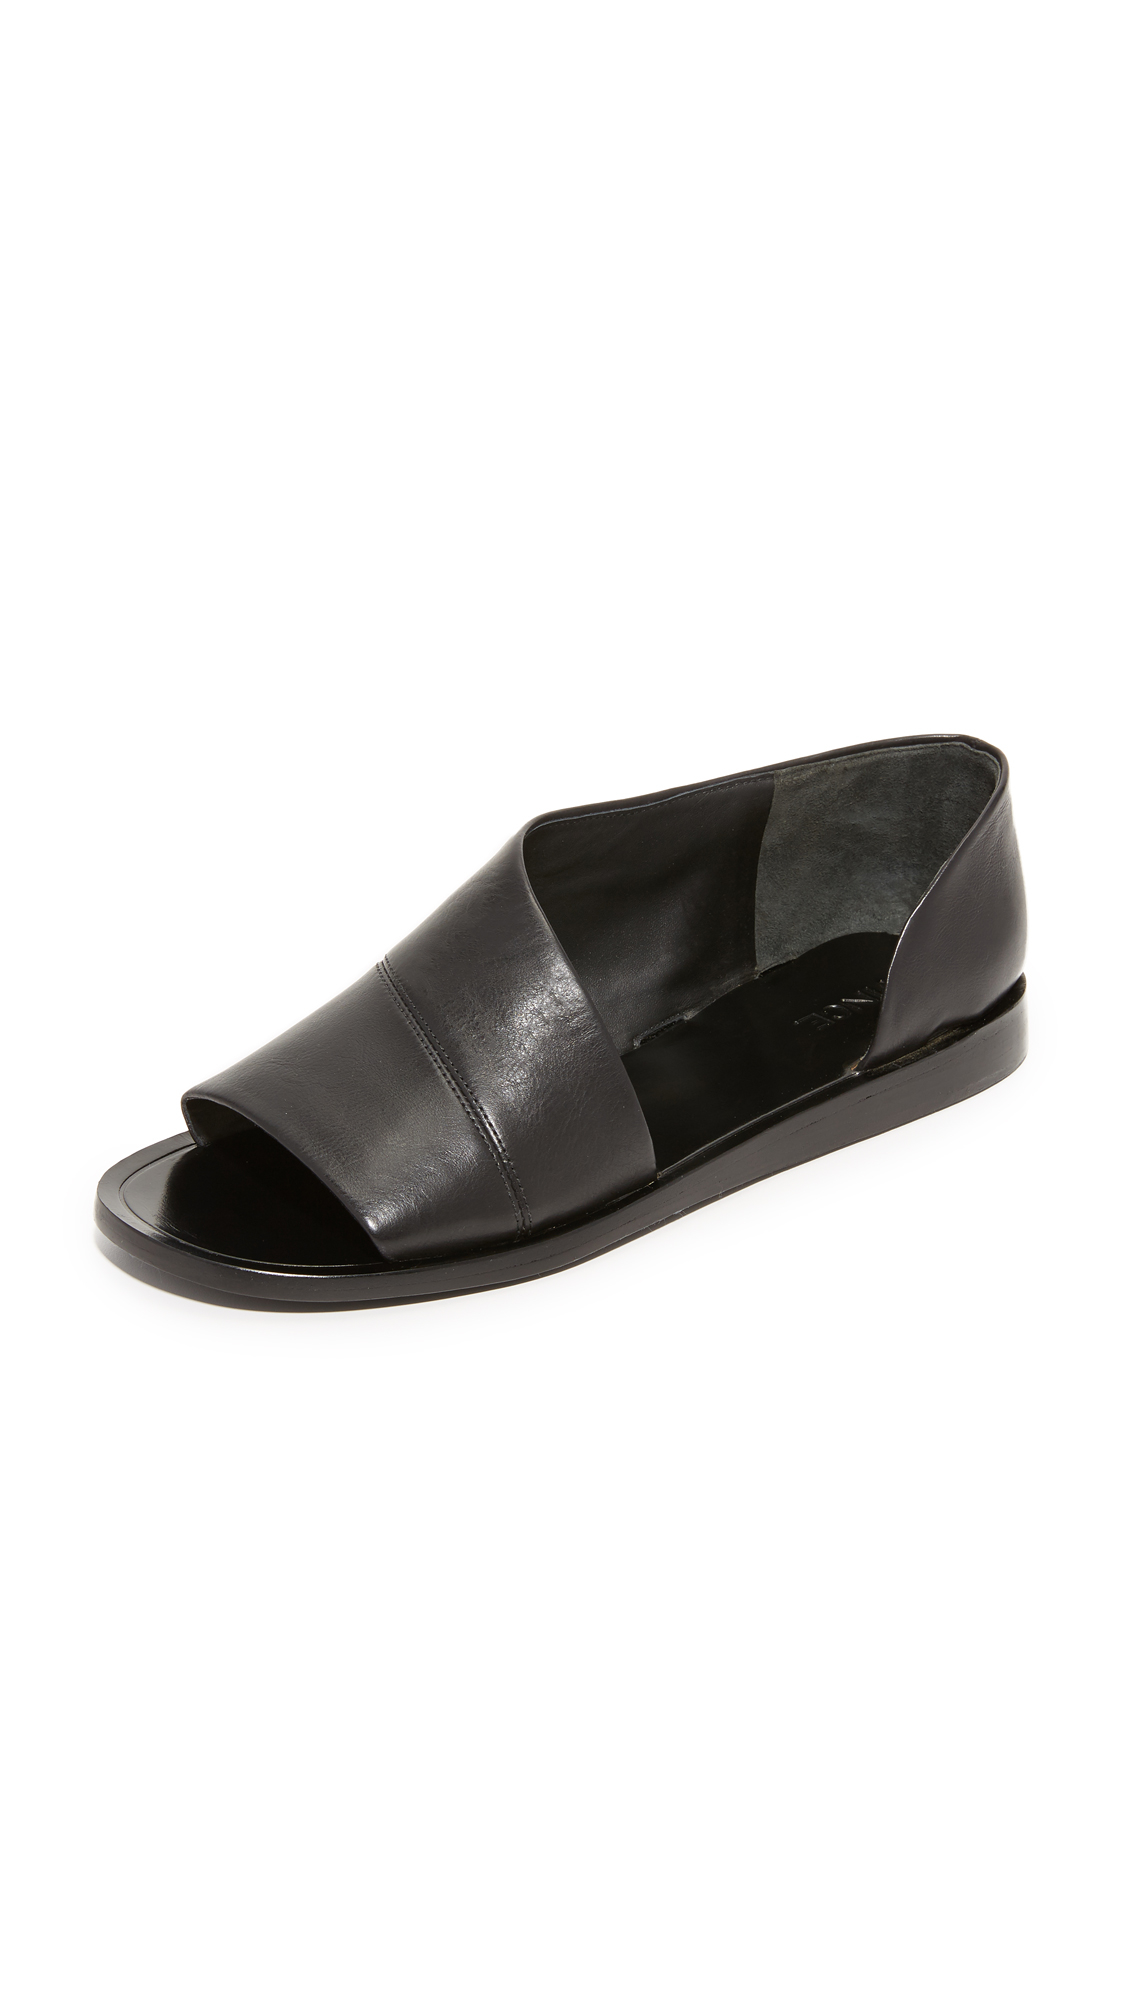 Vince Leather Tabitha Flat Sandals In Black Lyst